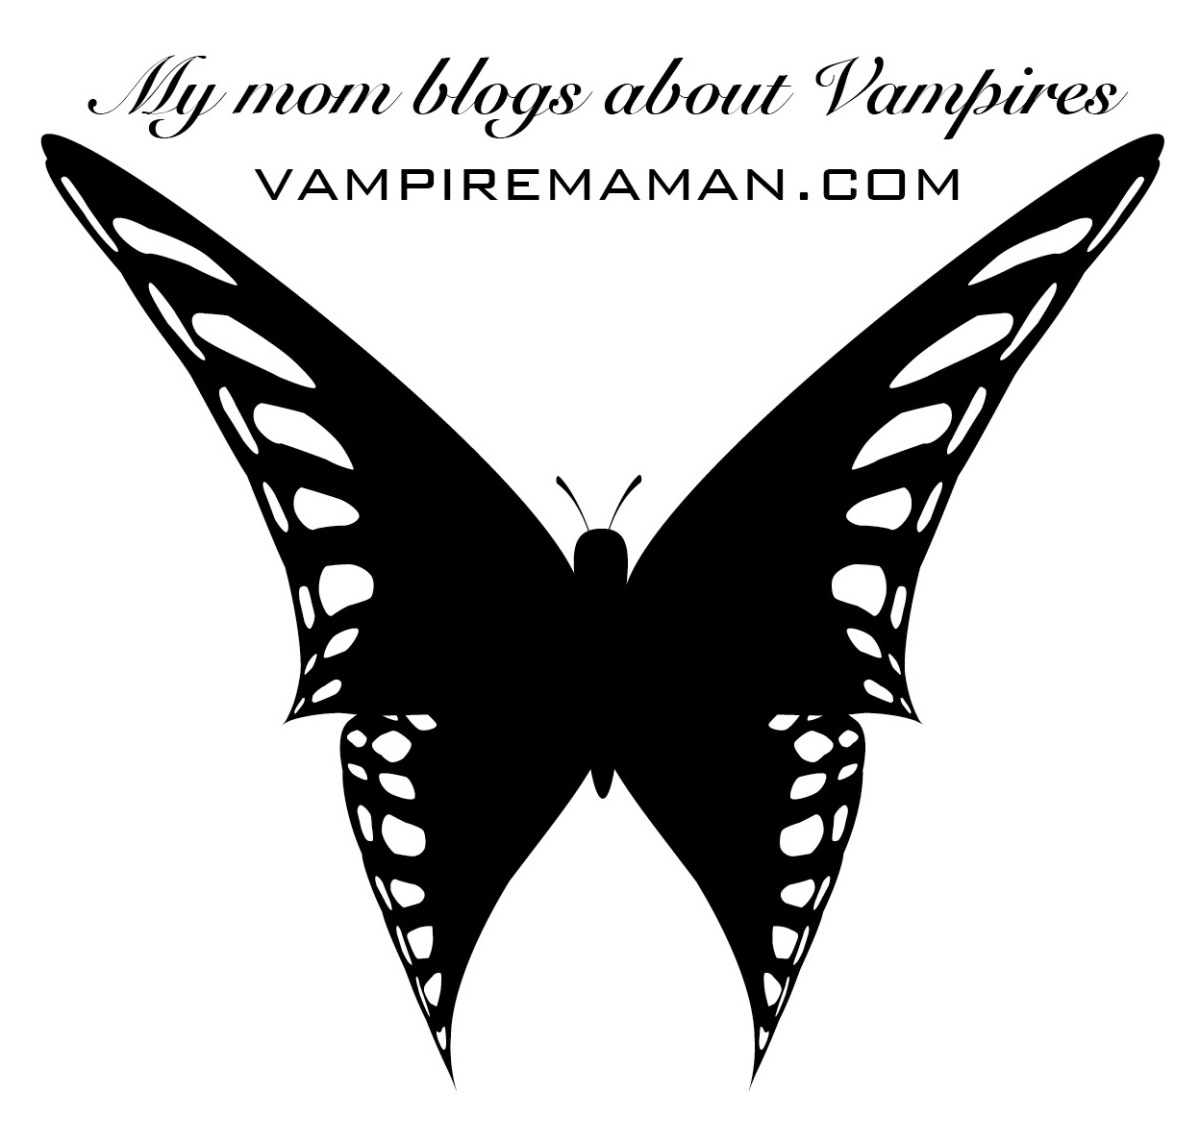 Quotations about Life, Love, Art and Vampires